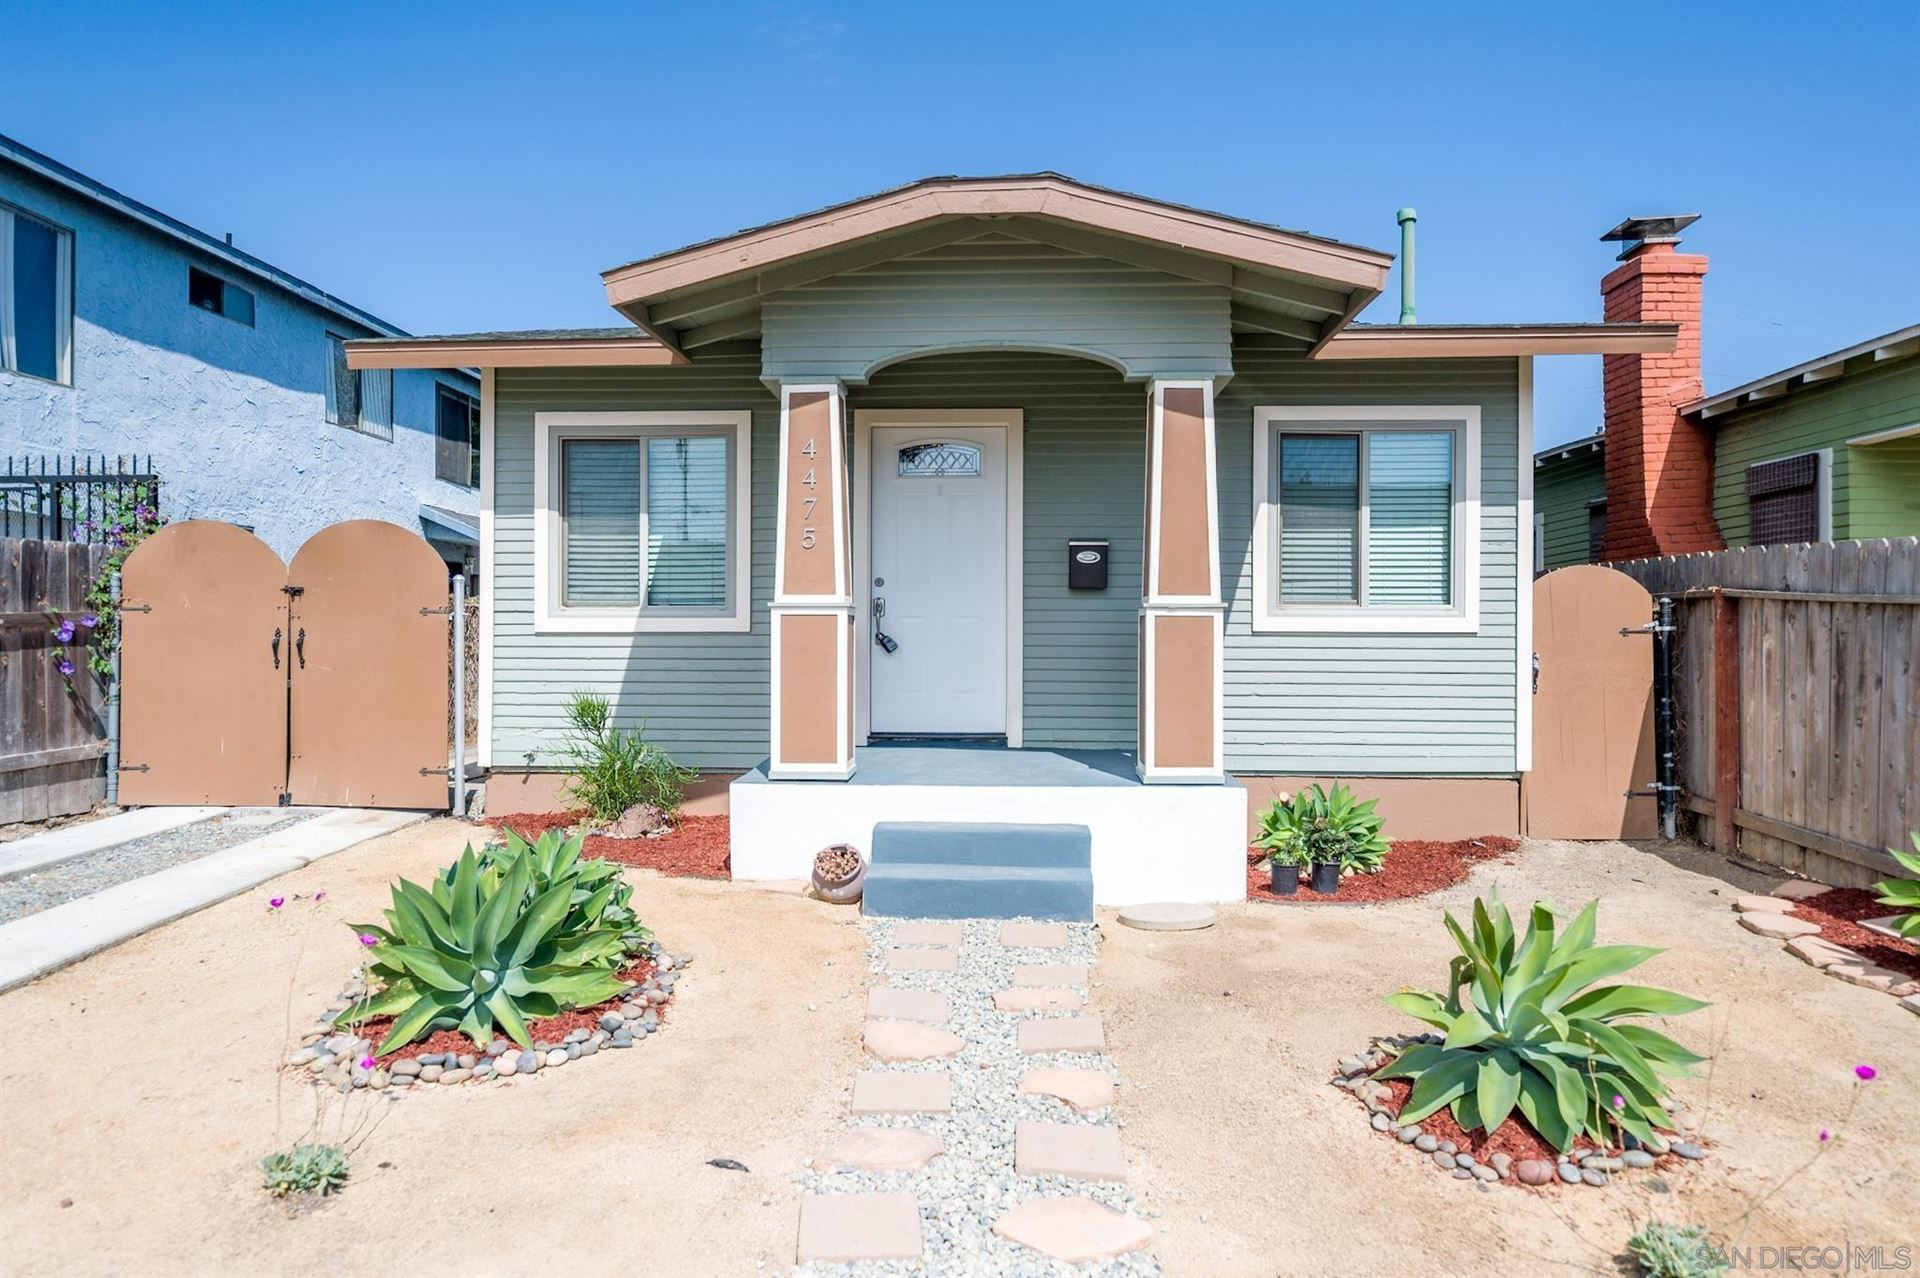 Photo for 4475 36Th St, San Diego, CA 92116 (MLS # 210026888)